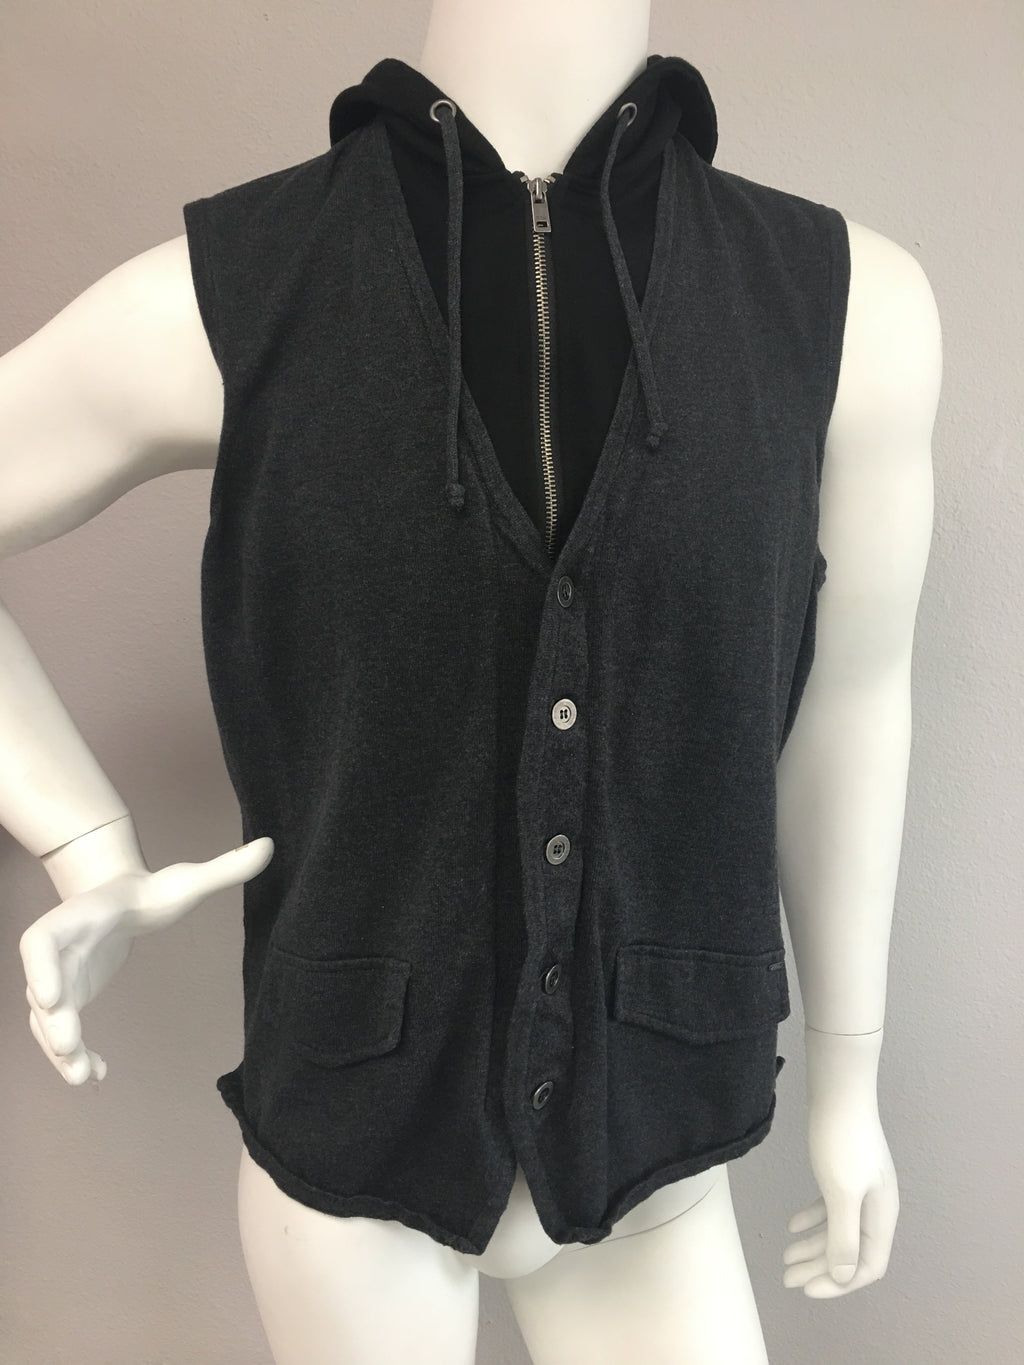 Guess sleeveless jacket - Vanity's Vault